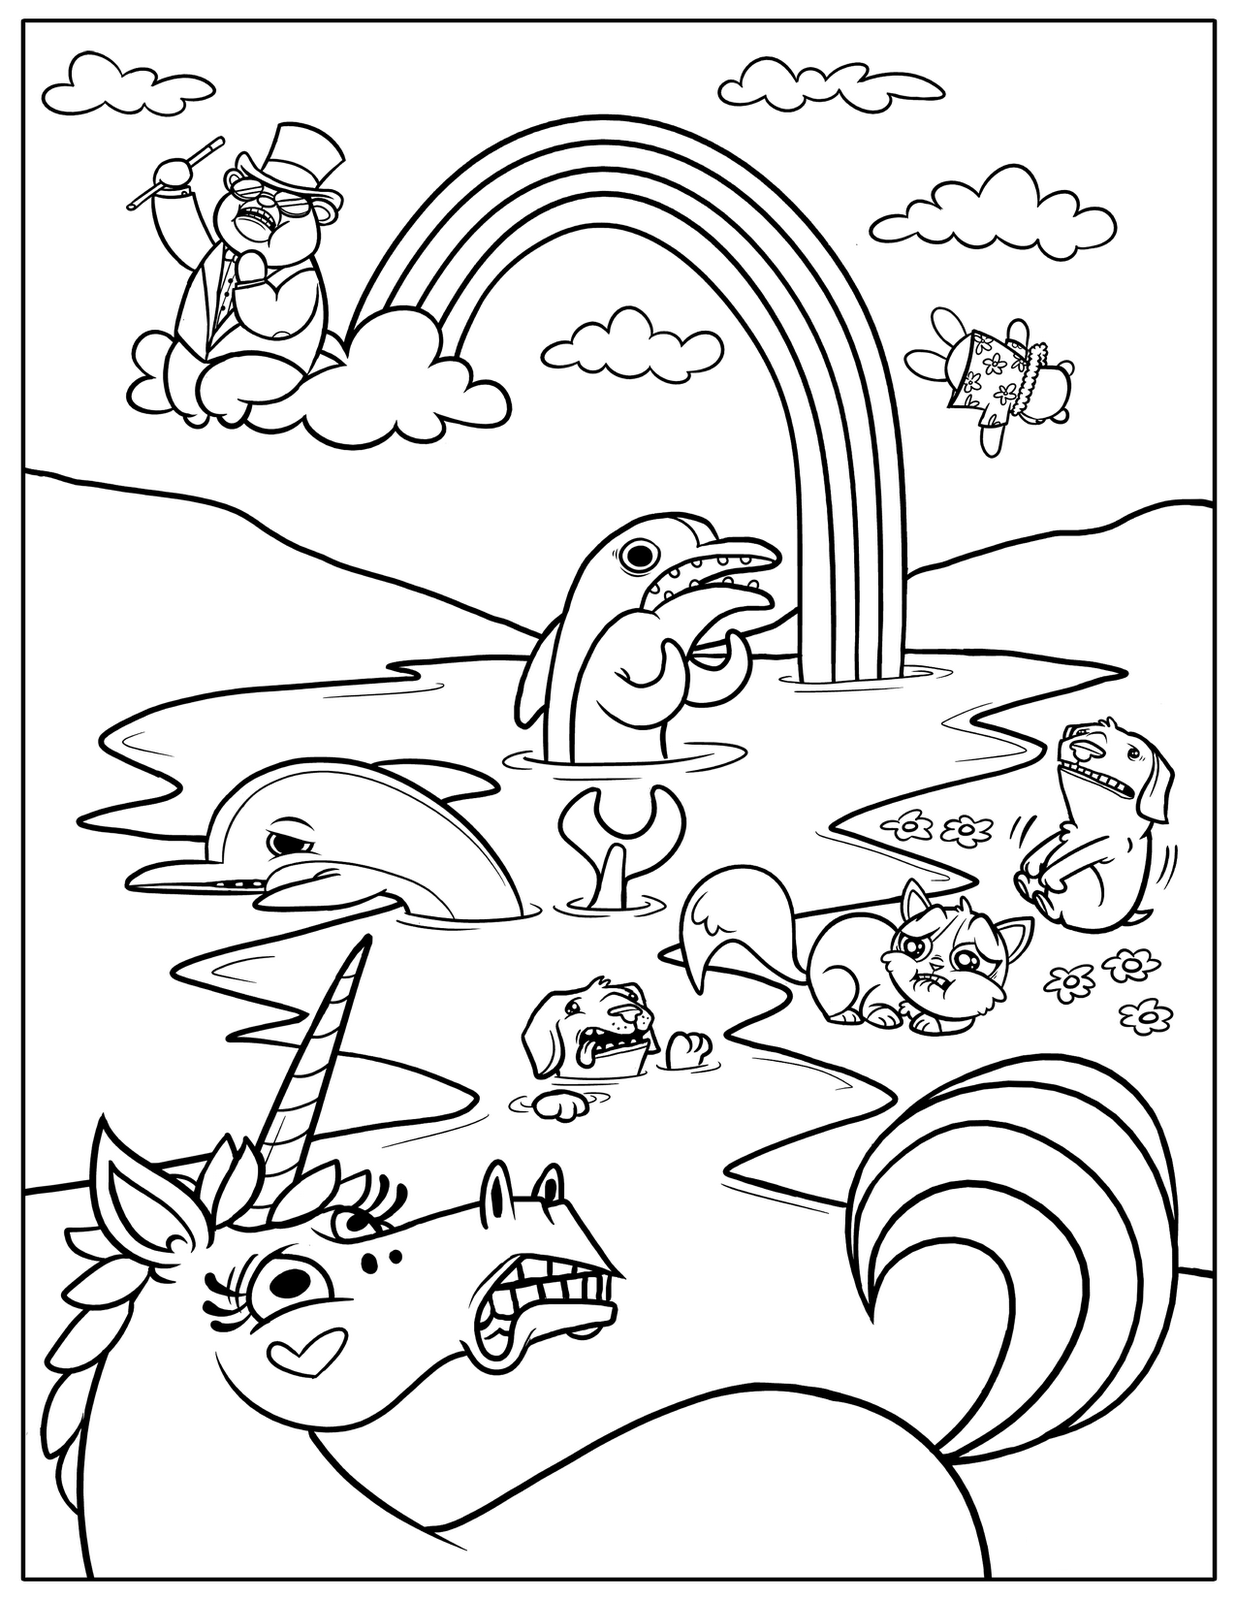 rainbow coloring pages kids printable - Kids Drawing Sheet